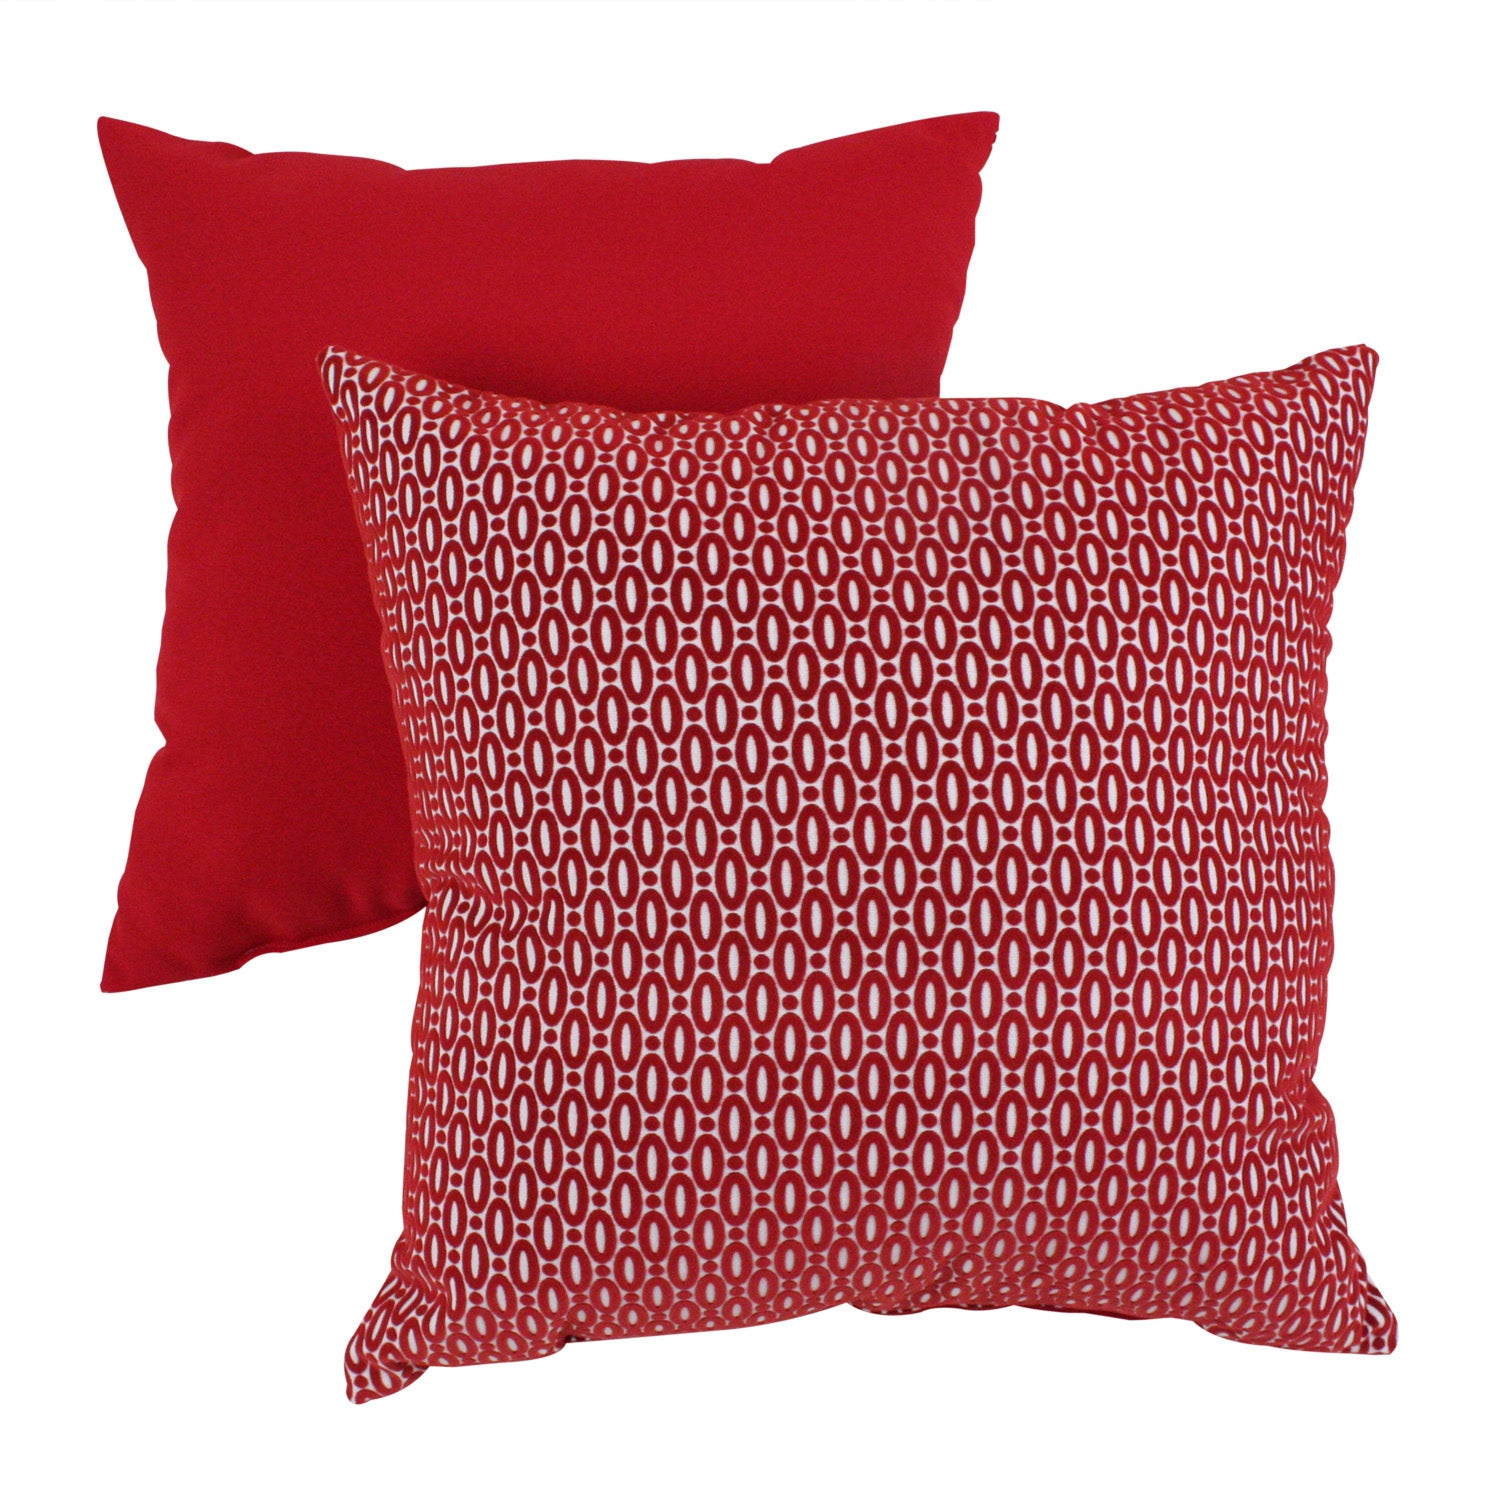 Pillow Perfect 'Oval Dots' Red Throw Pillow